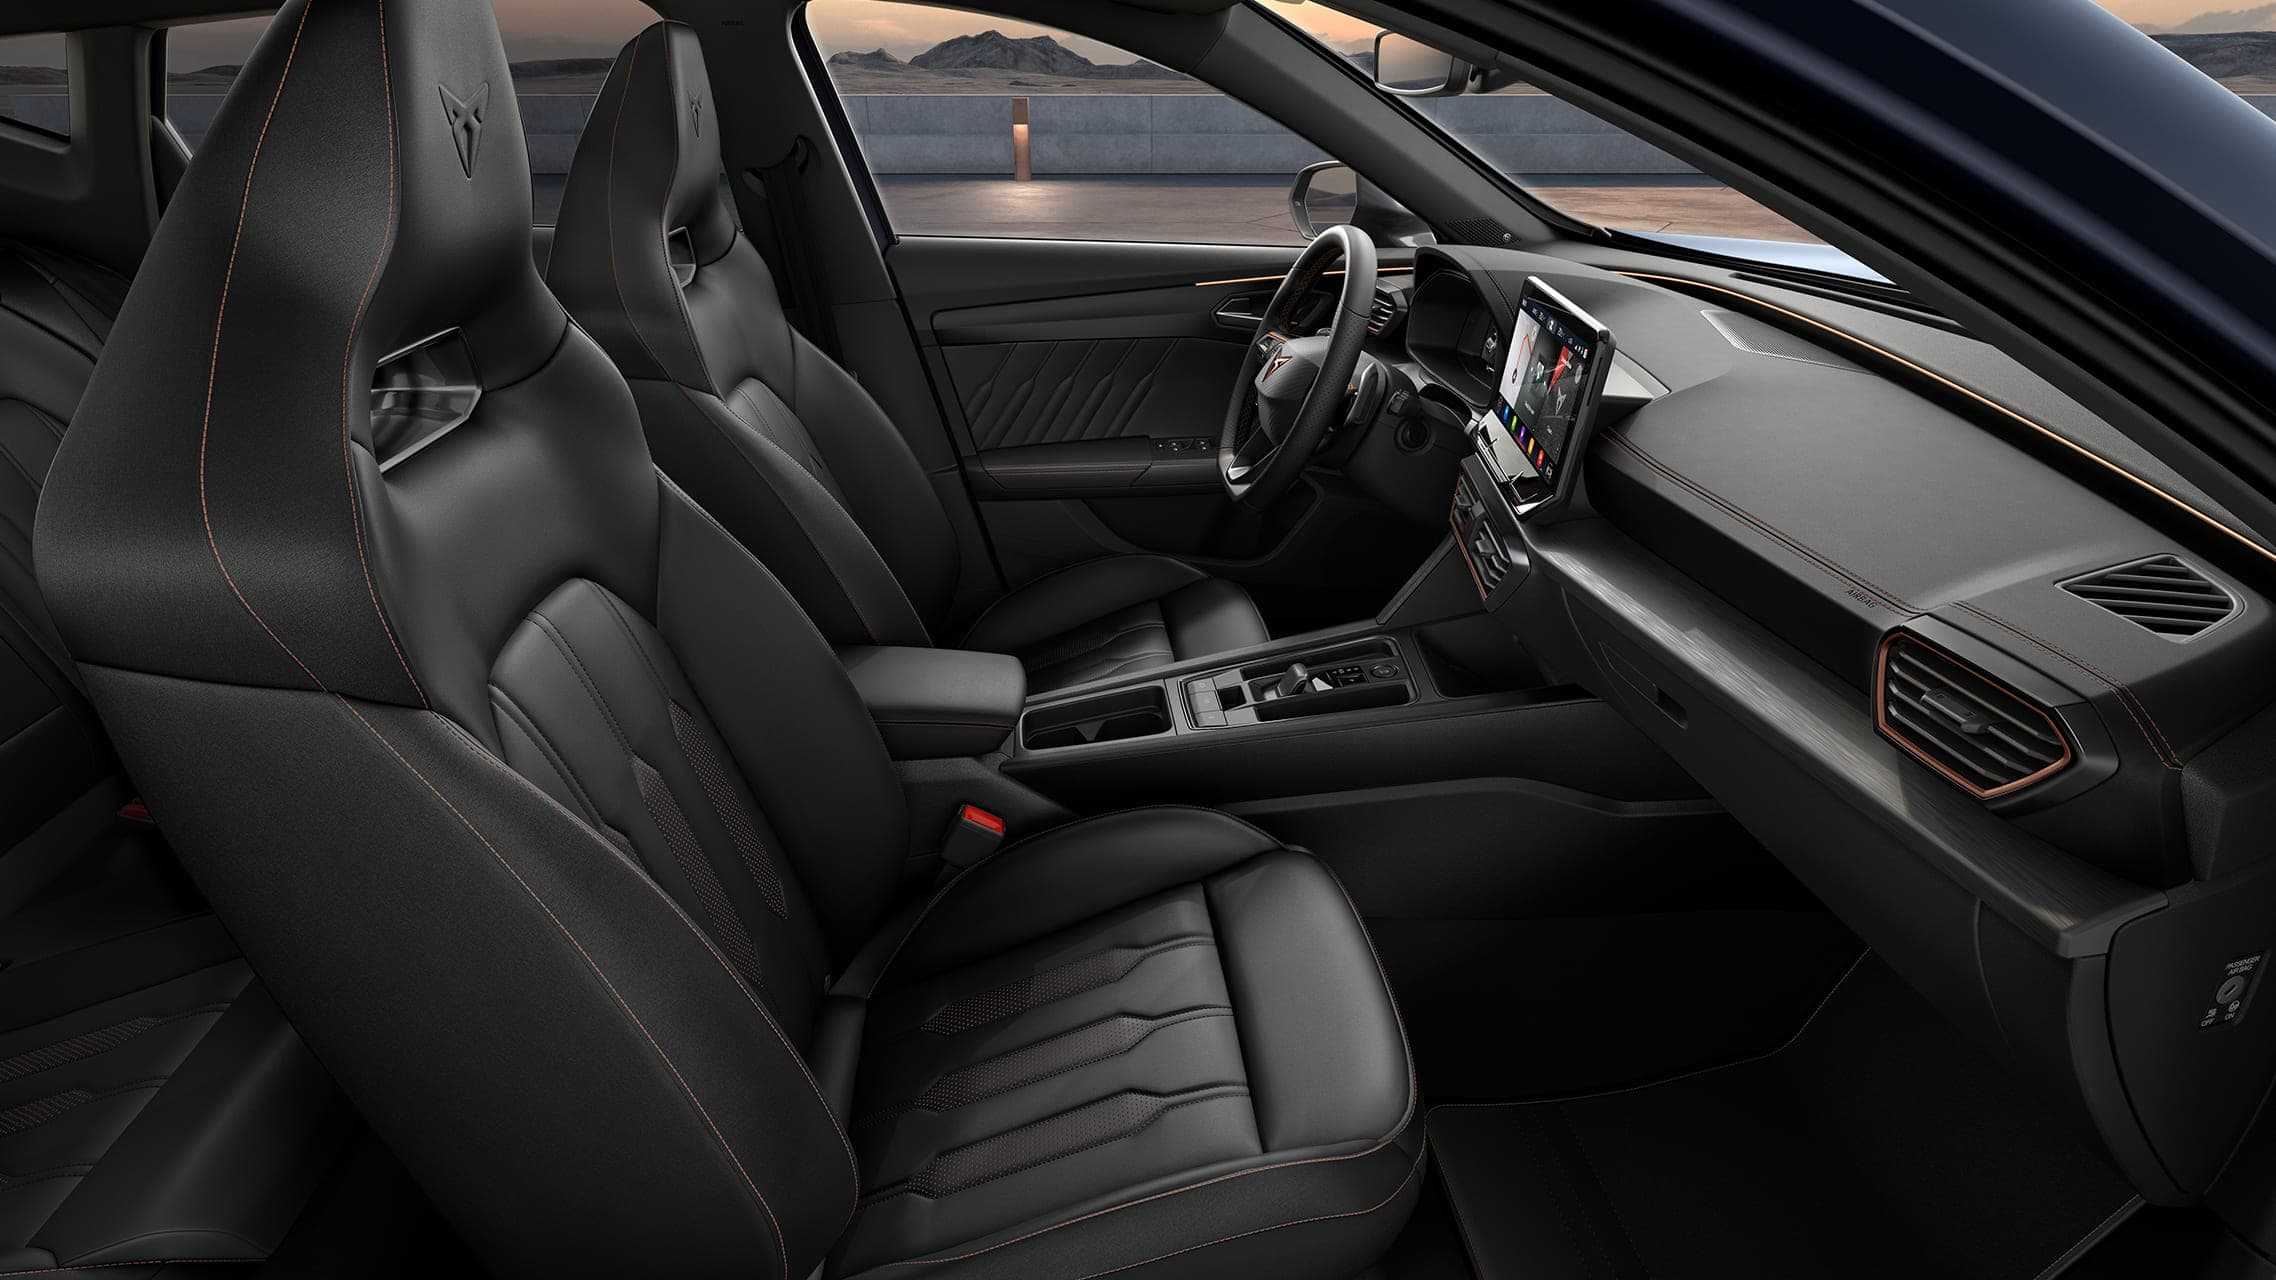 new cupra formentor interior with black leather bucket seats